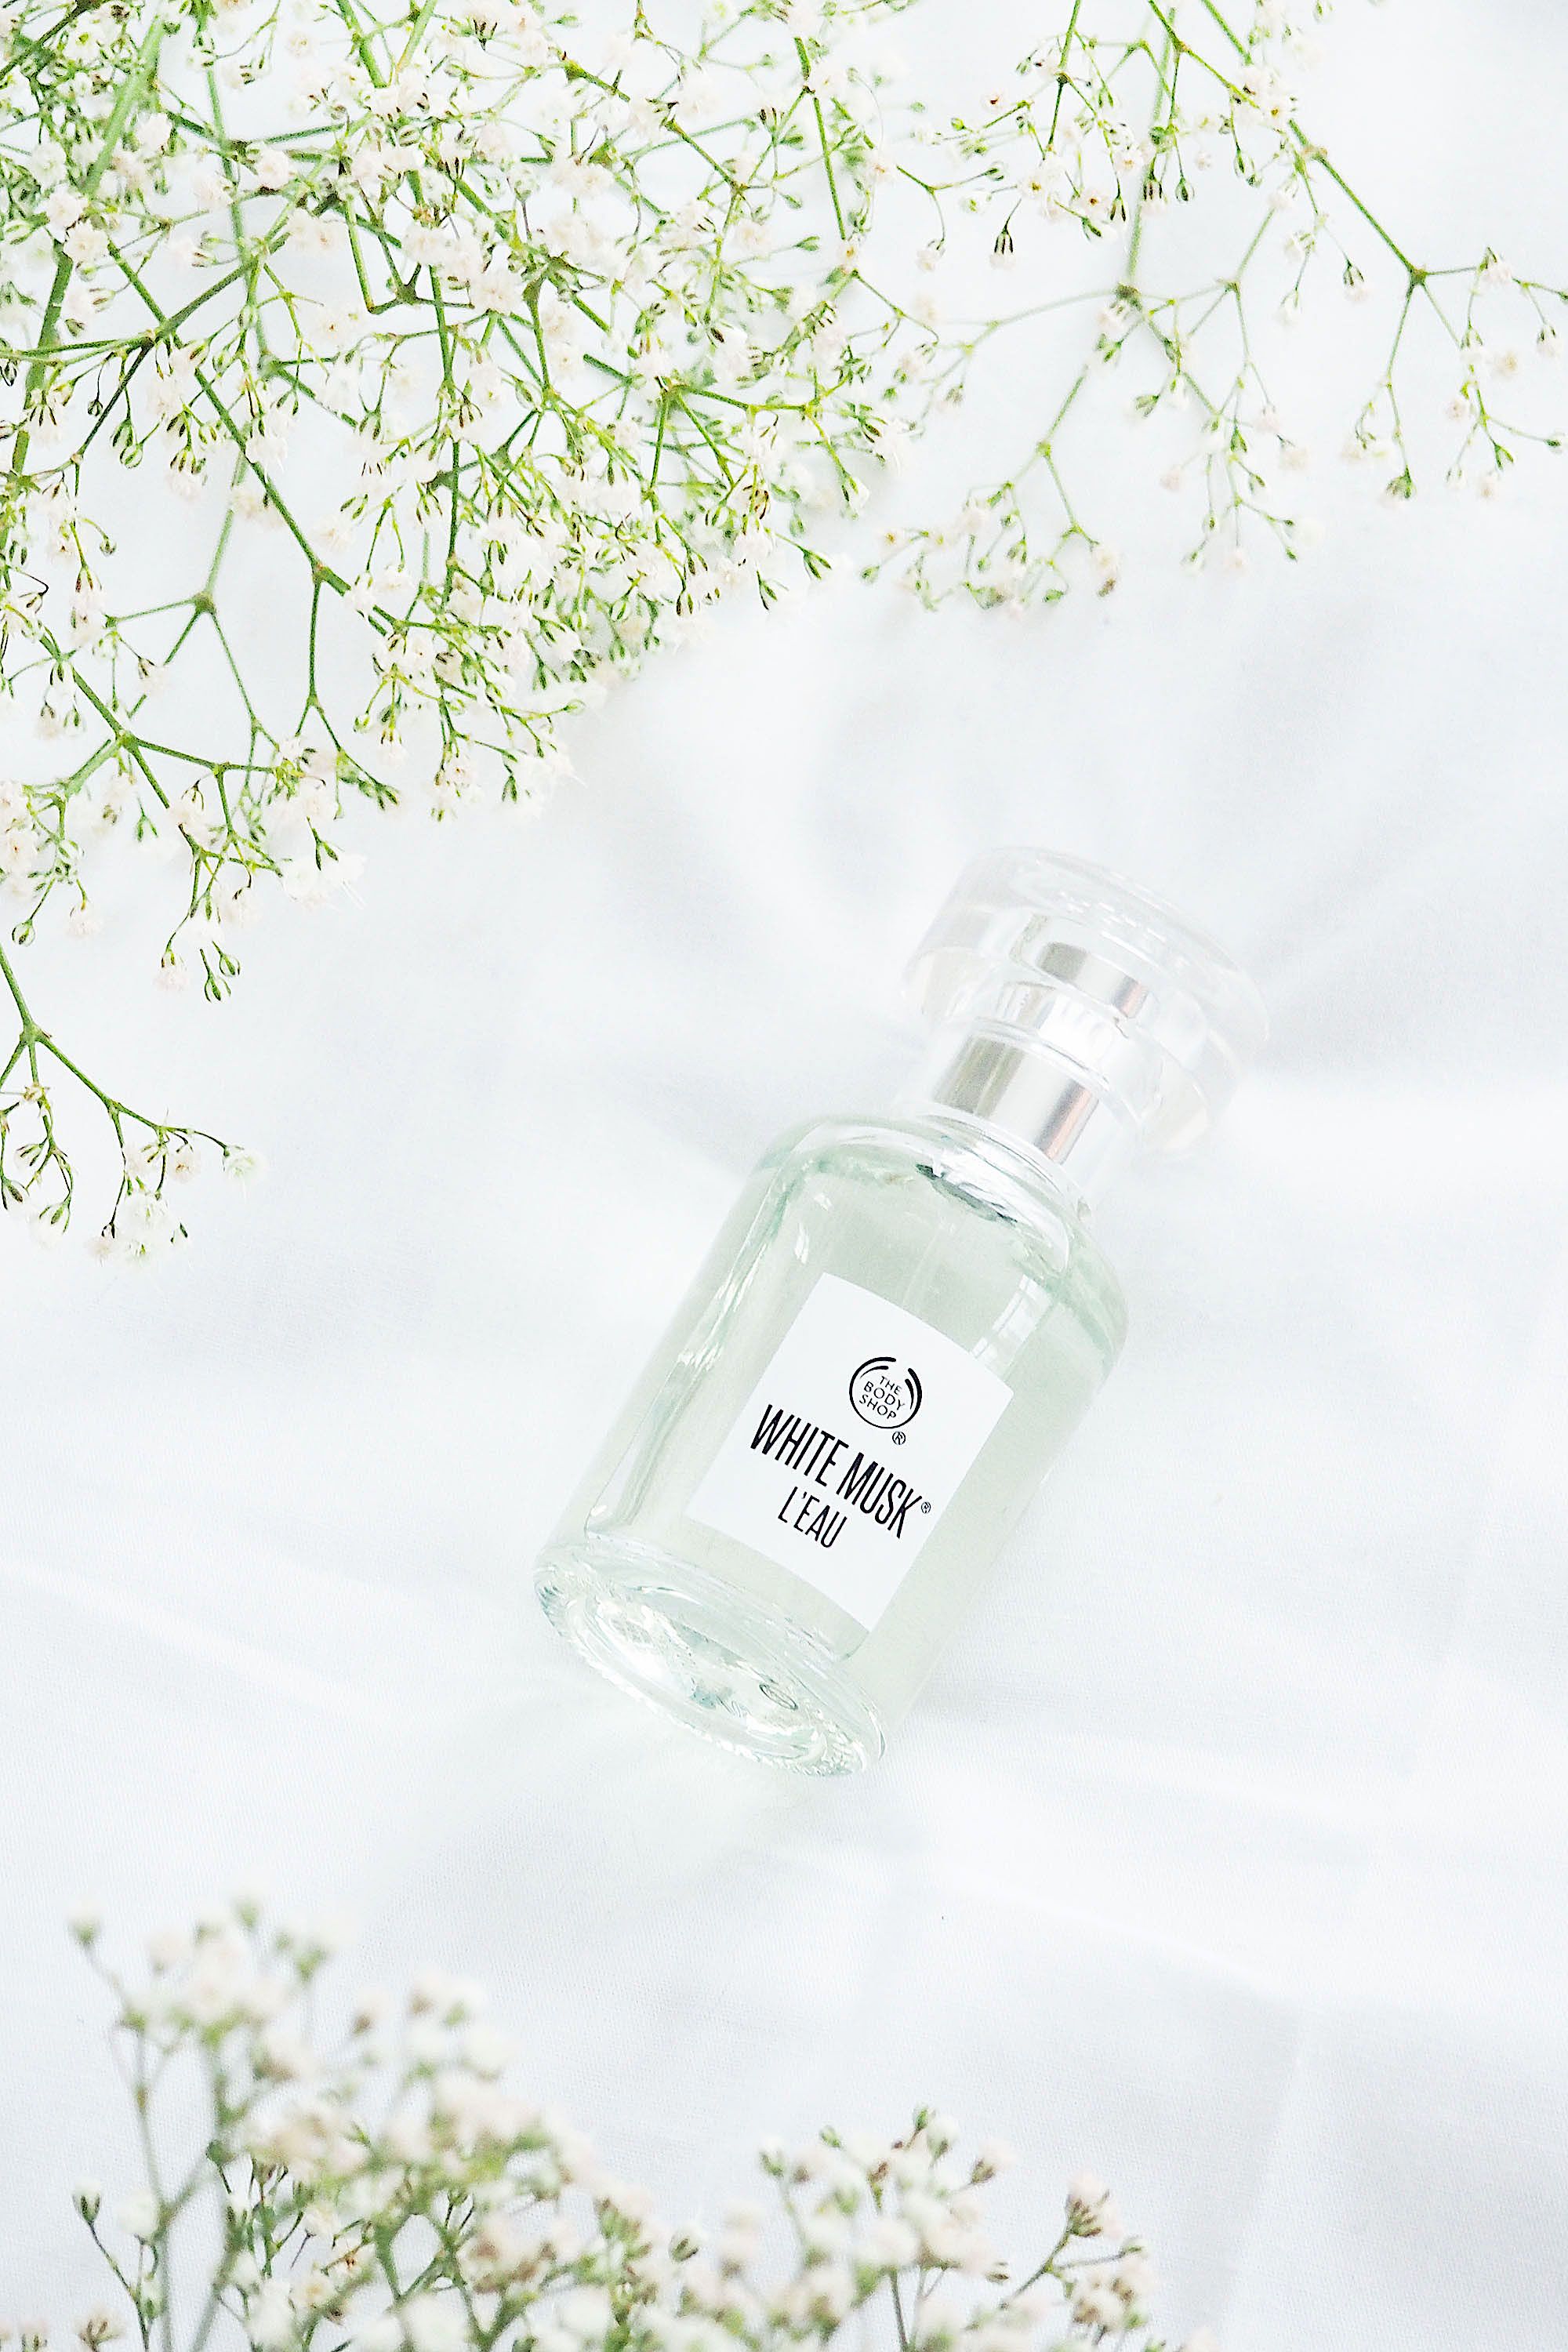 The Body Shop White Musk L'eau - Beauty and the Chic